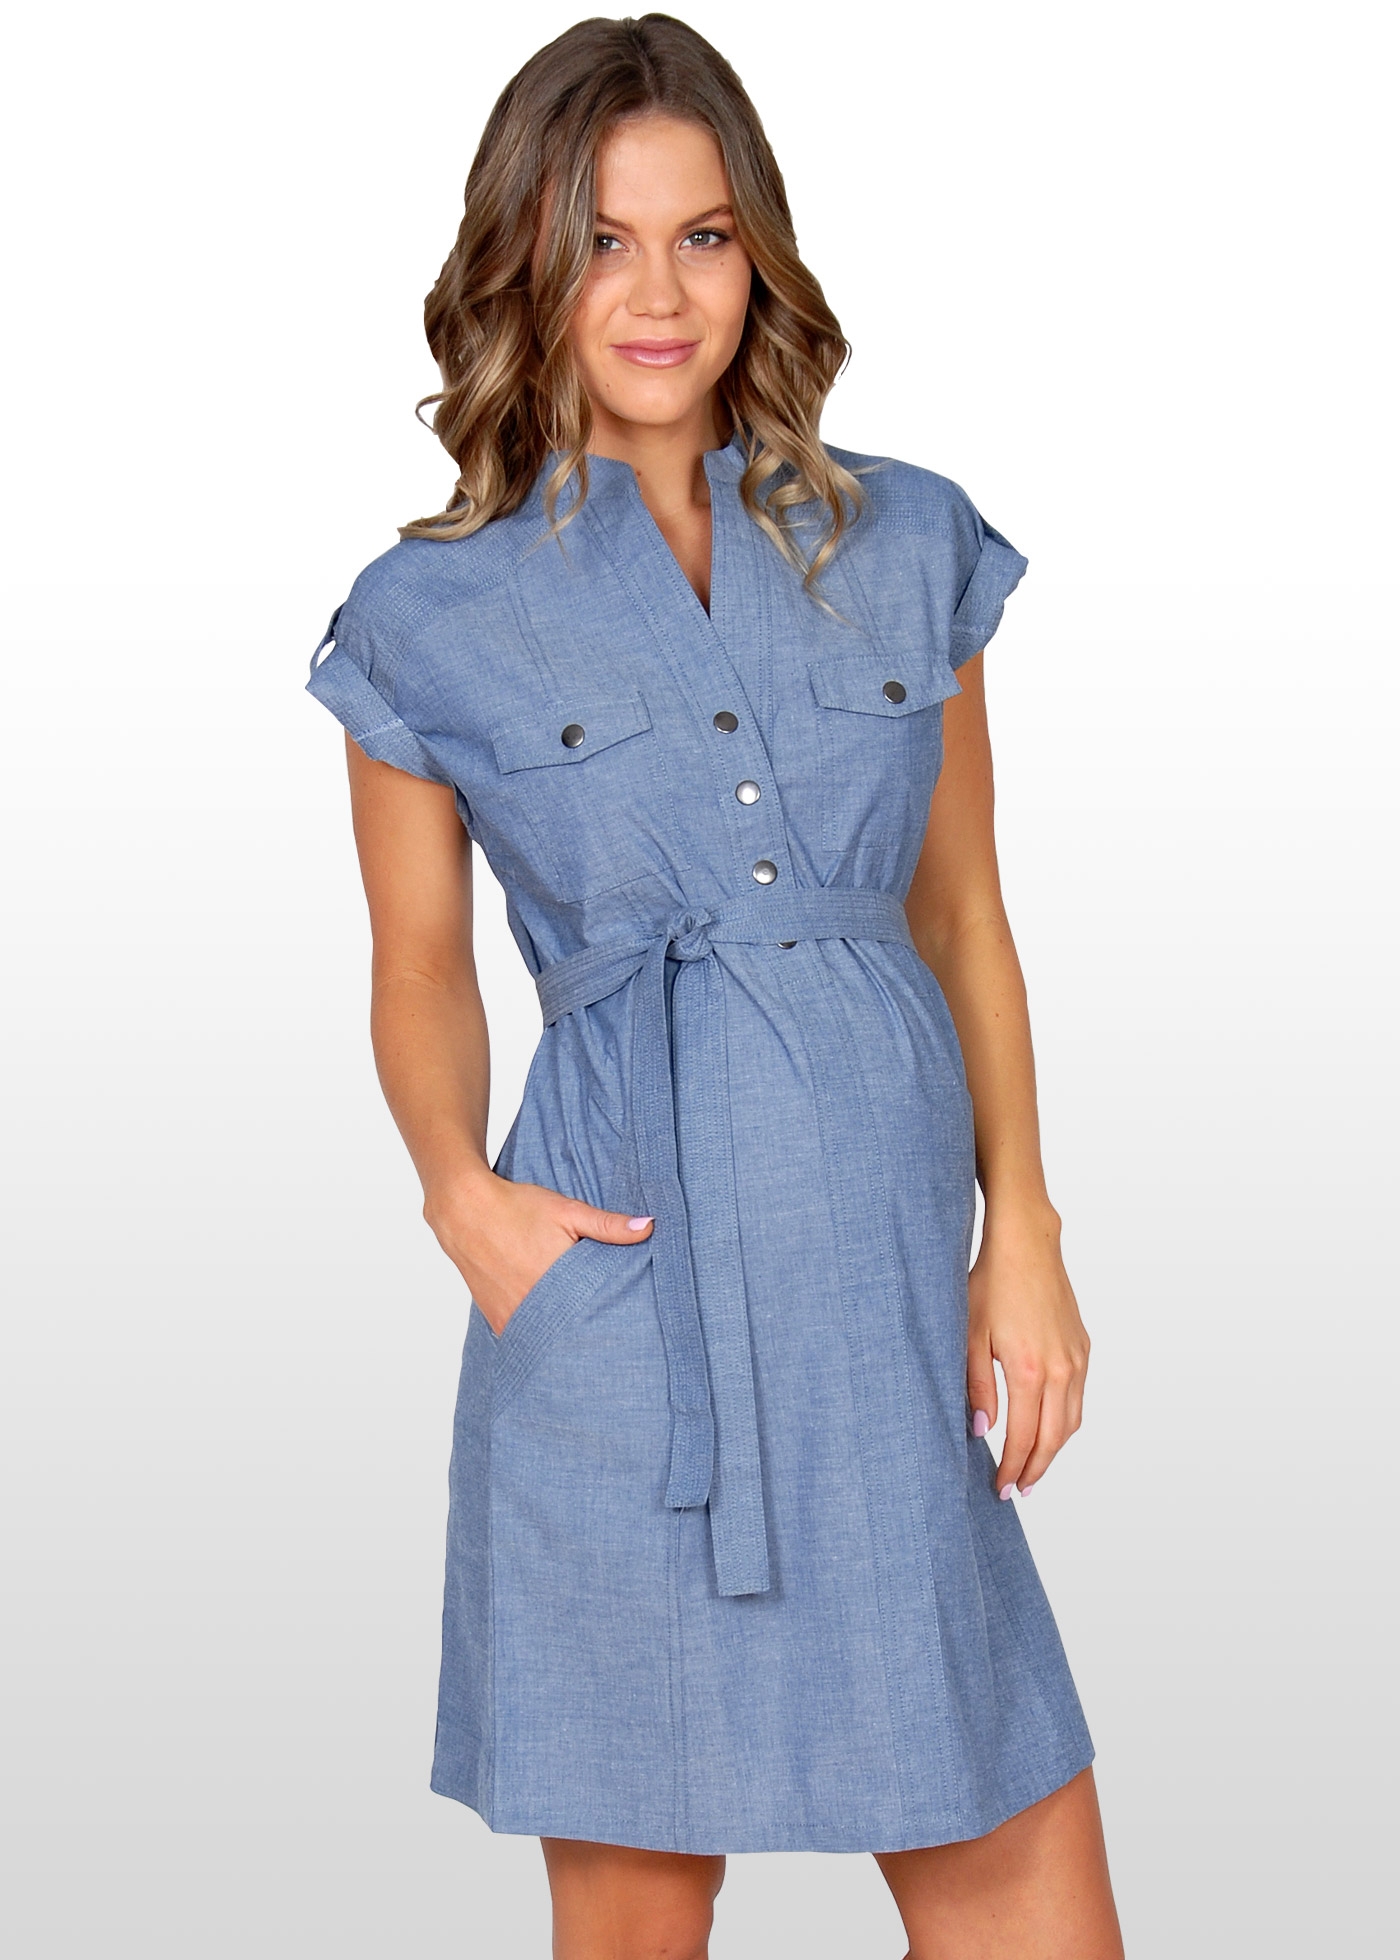 Blue Chambray Maternity Dress